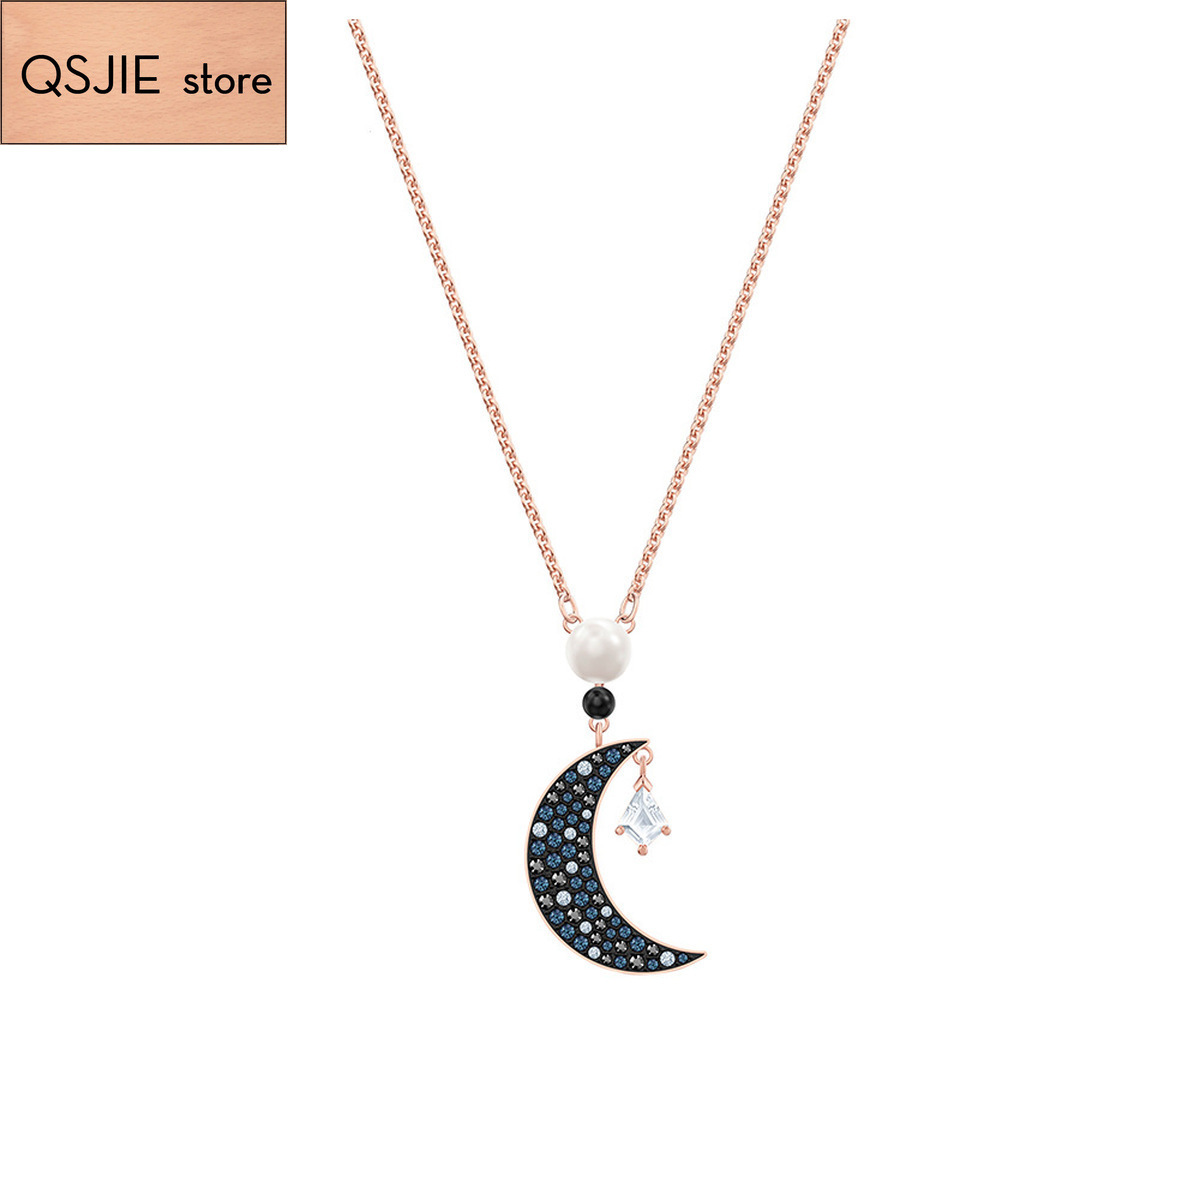 QSJIE High quality 1:1 Swa Star Moon Golden Pendant with black lady Necklace Glamorous fashion jewelry